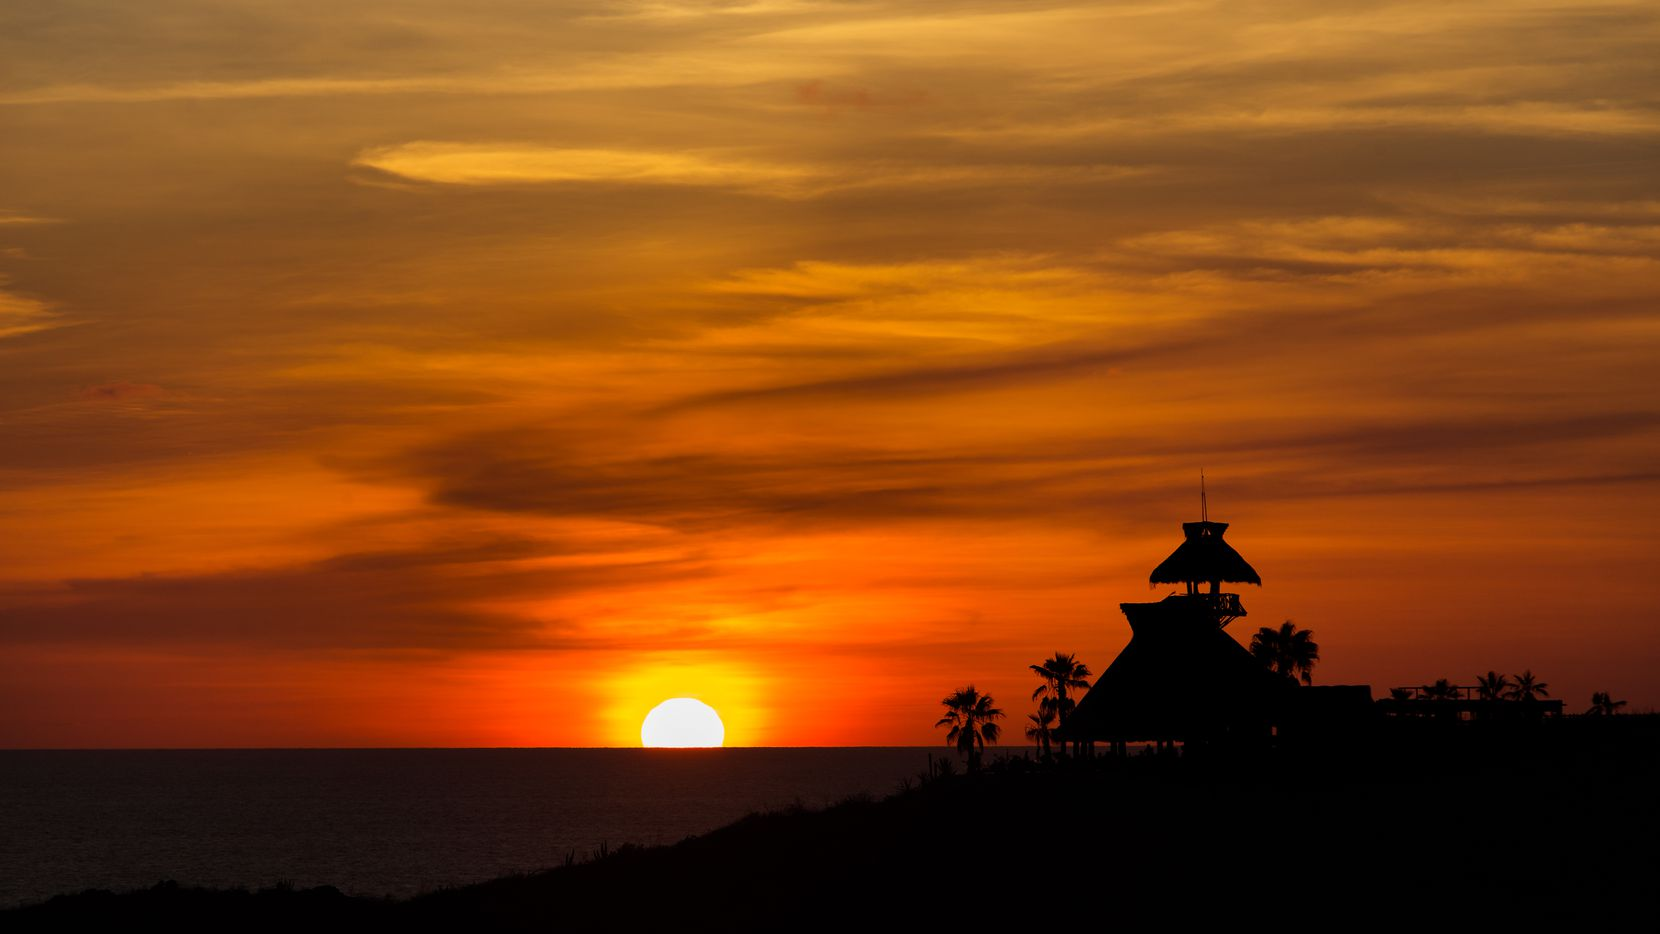 The sun sets behind the oceanfront El Mirador restaurant in Todos Santos, Mexico.